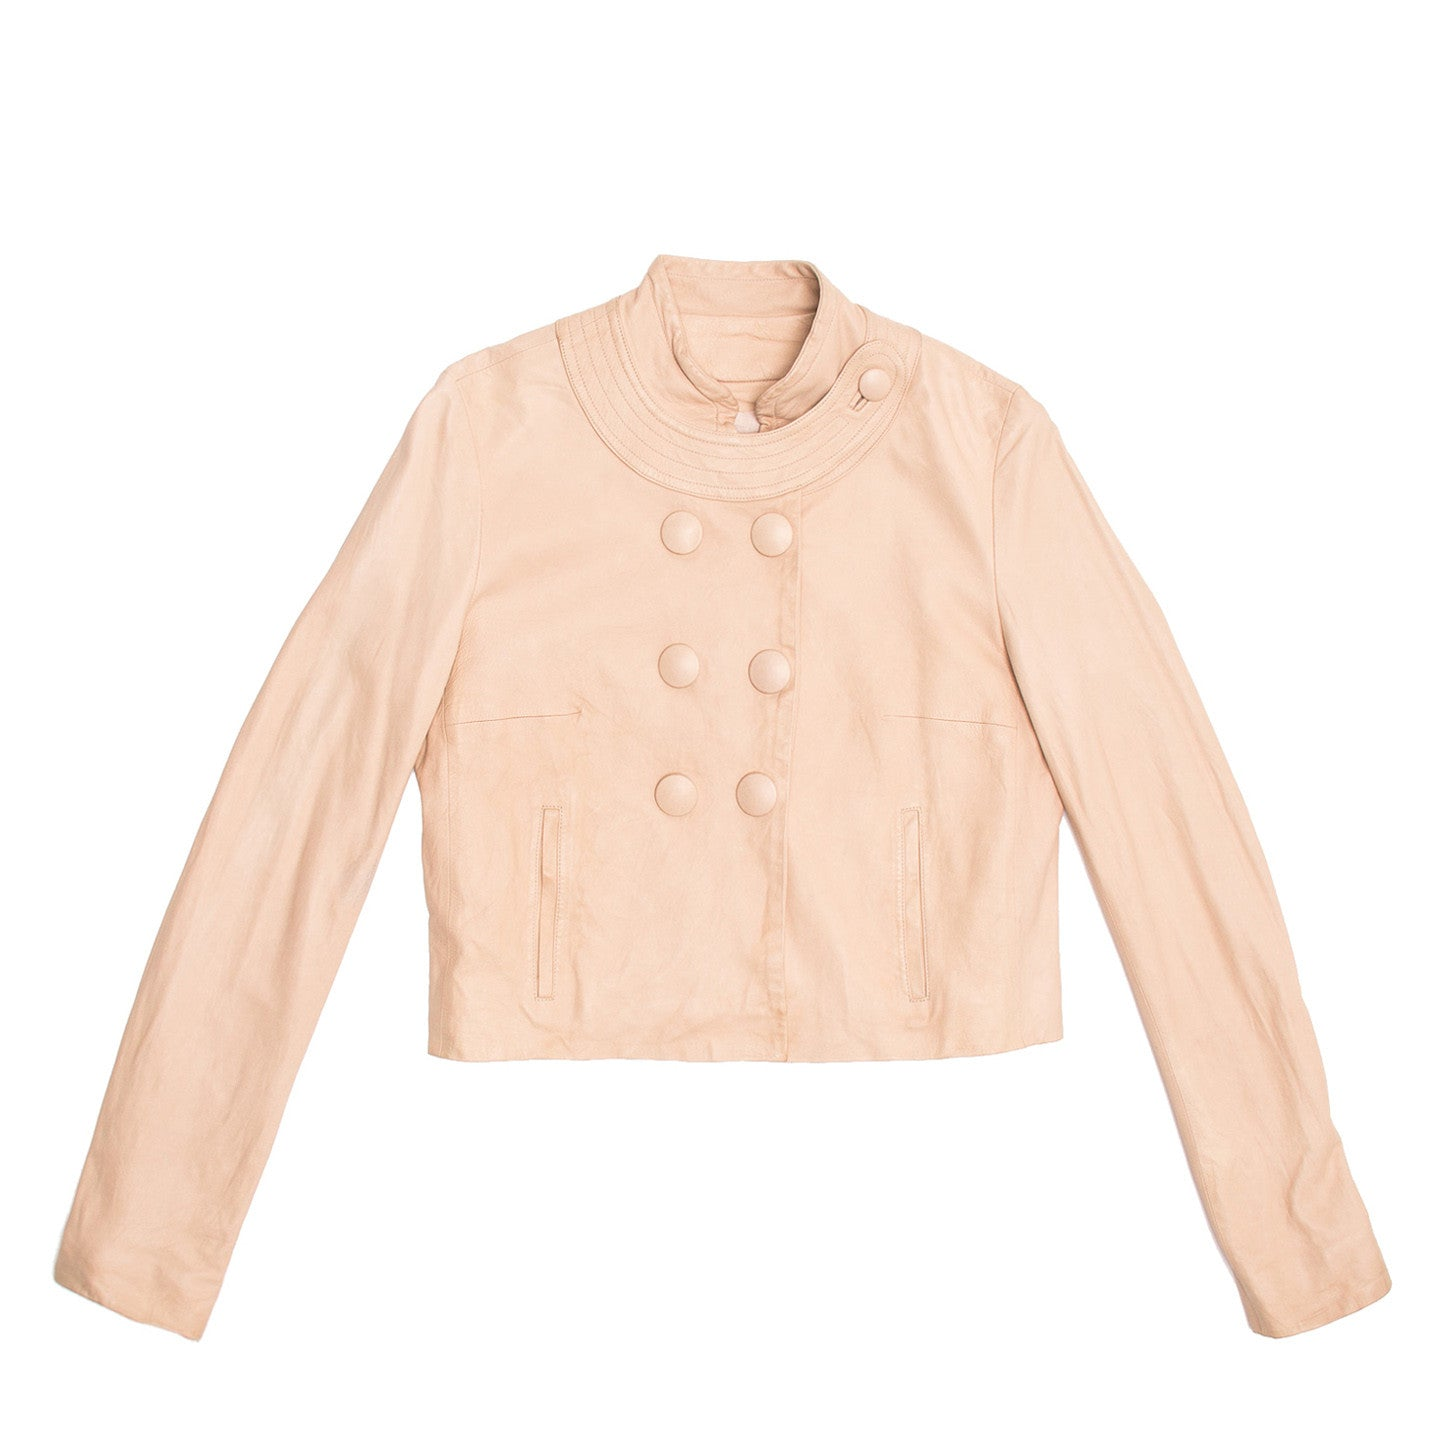 Chloe Pale Pink Leather Jacket, Size 42 (French)